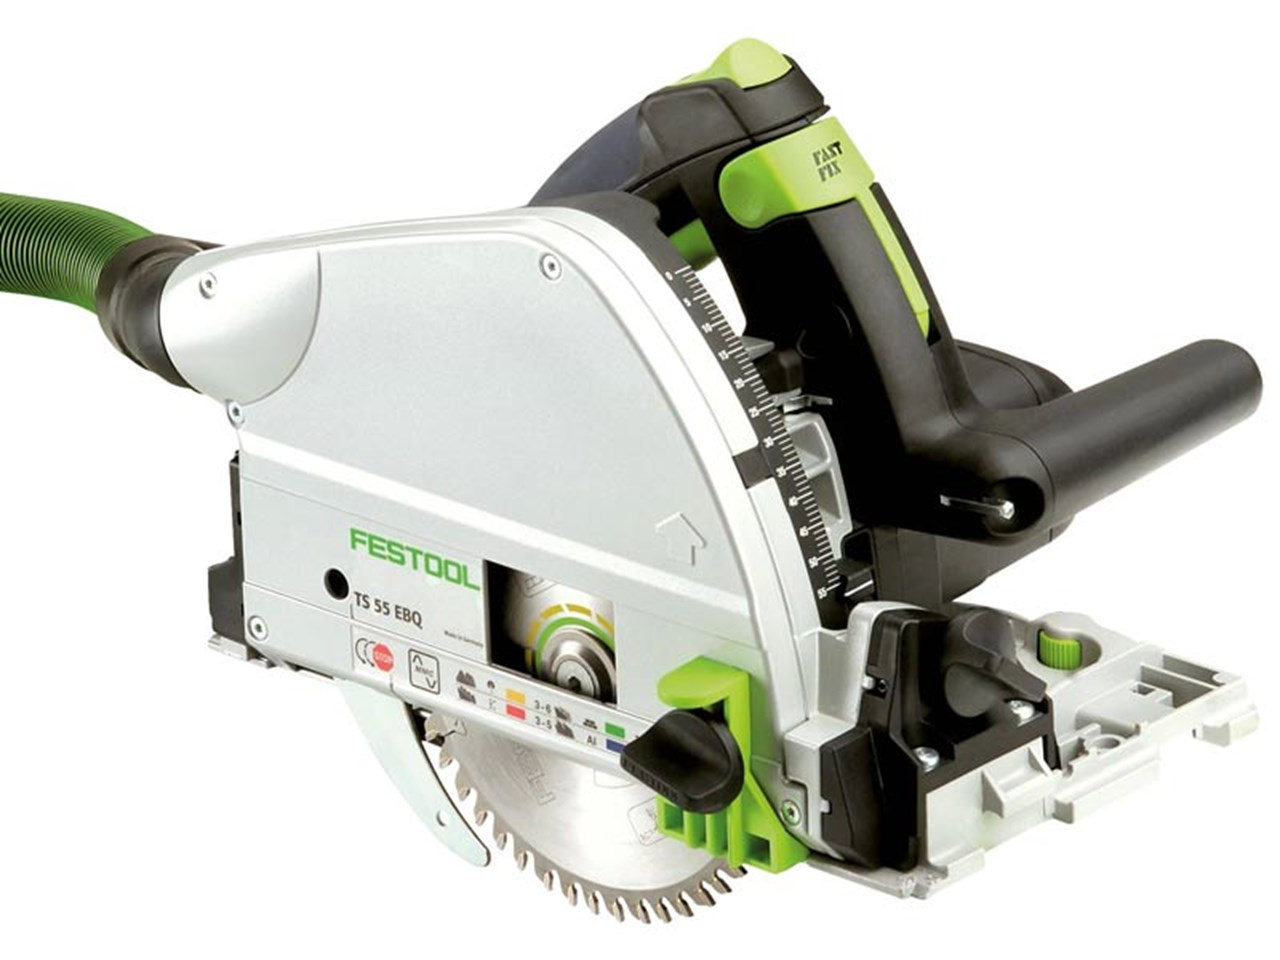 festool plunge saw with 2 guide rails